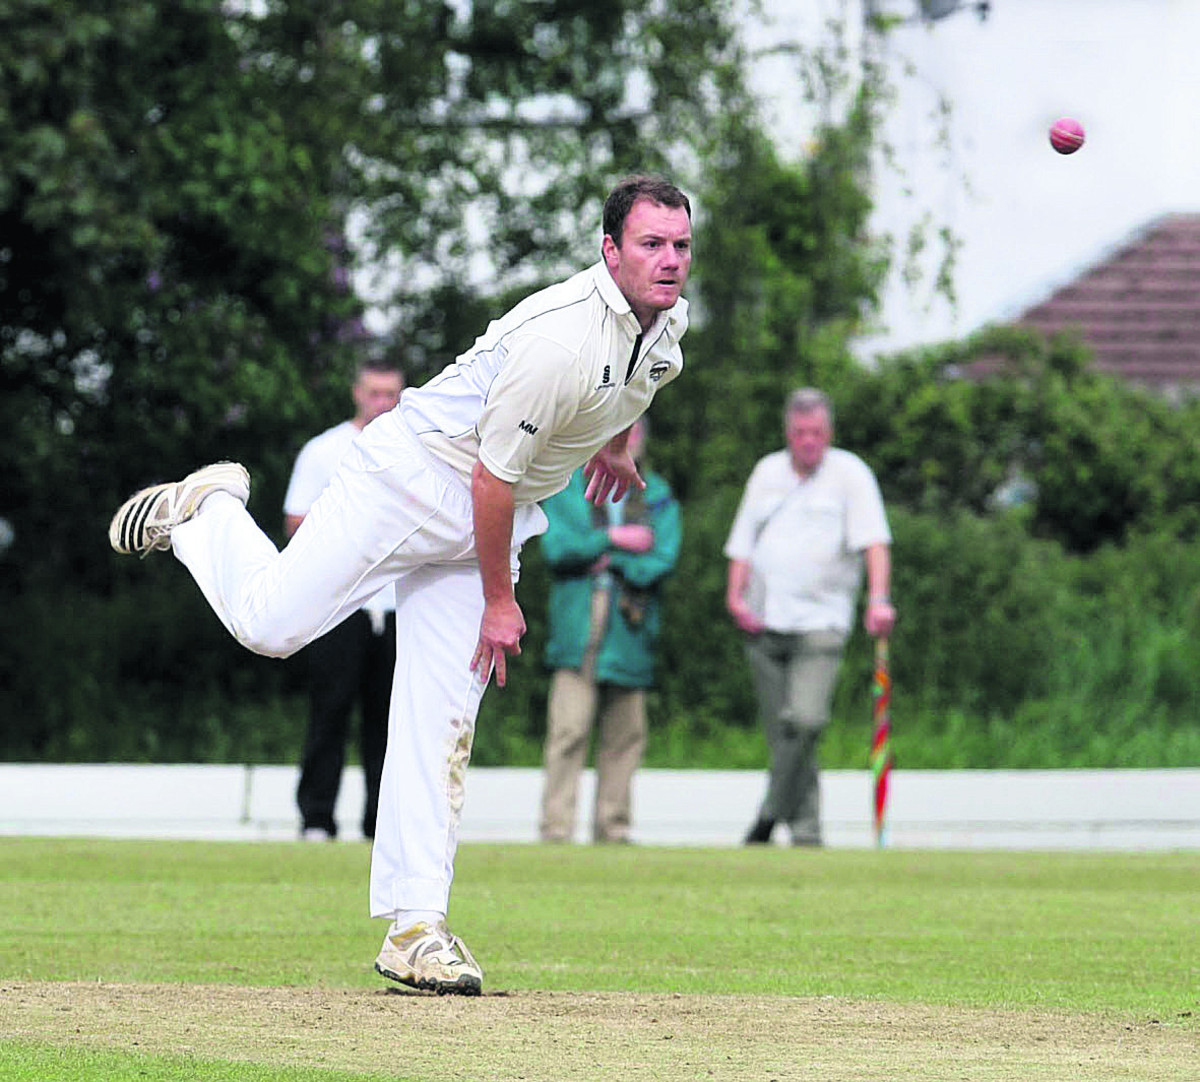 Tiddington skipper Matt Maule is set to miss the season after failing to recover from a broken right arm